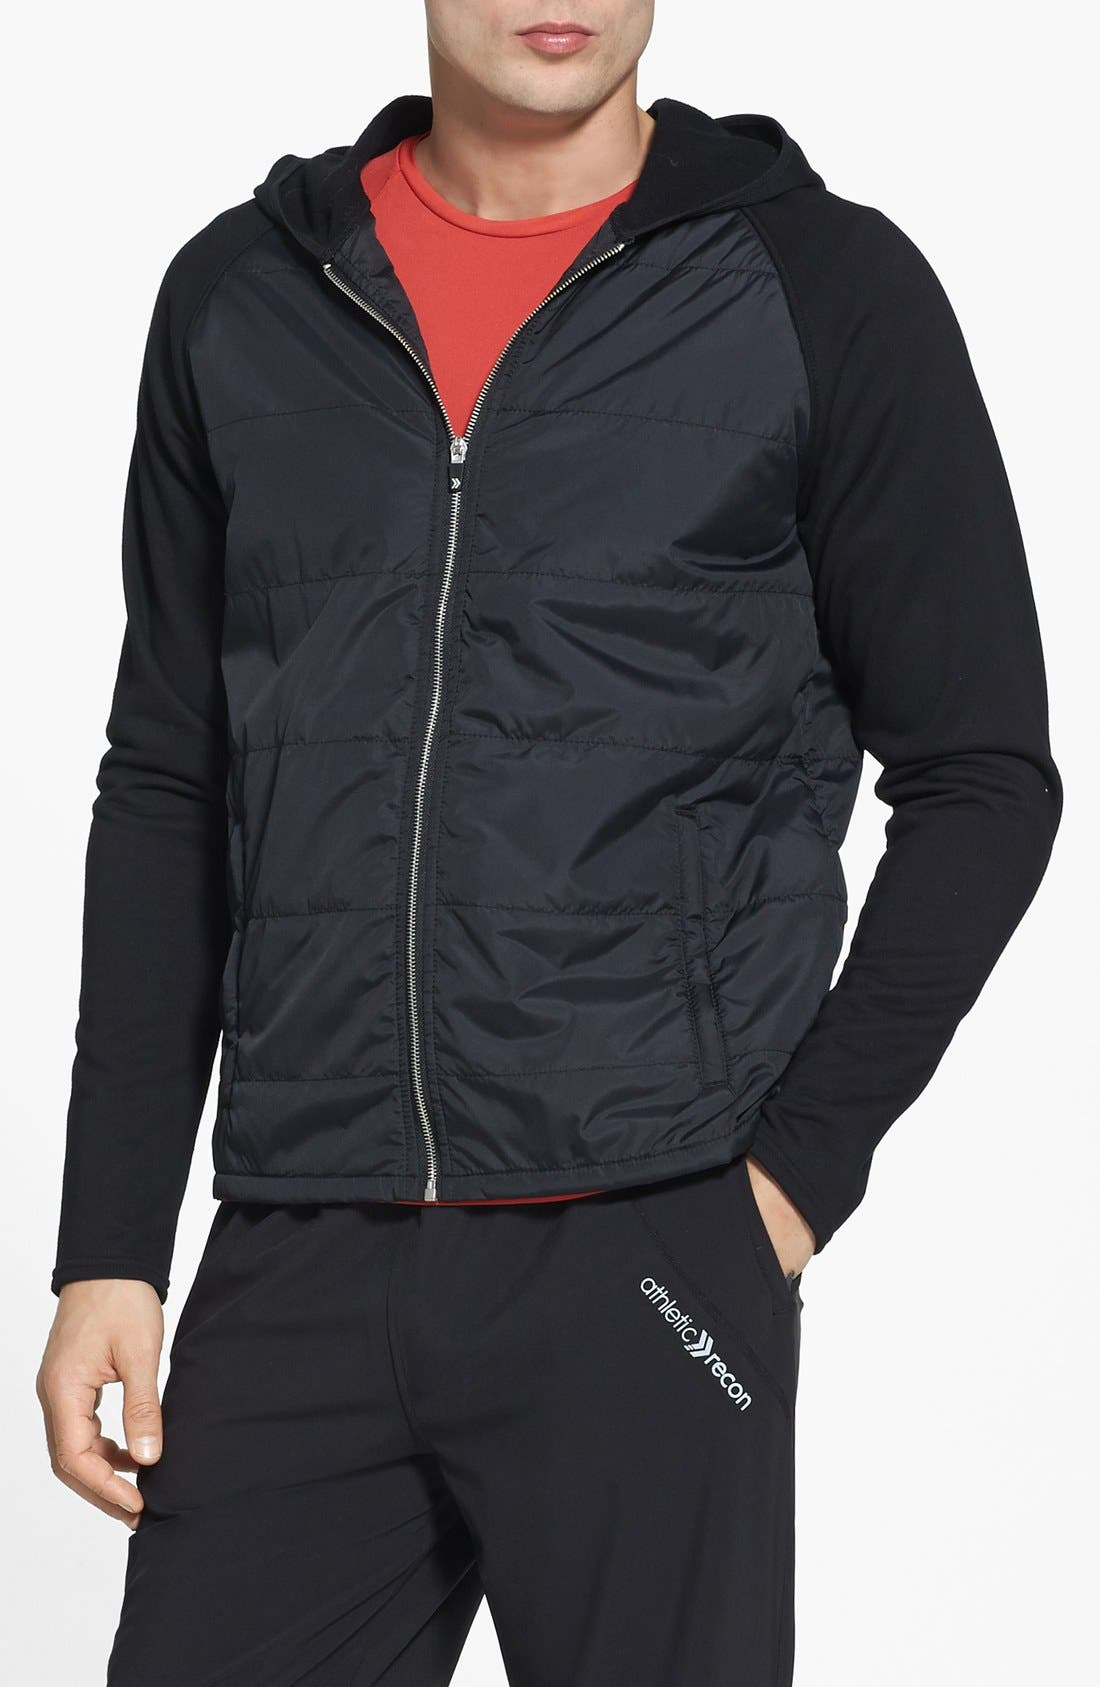 Main Image - Athletic Recon Jacket & Pants